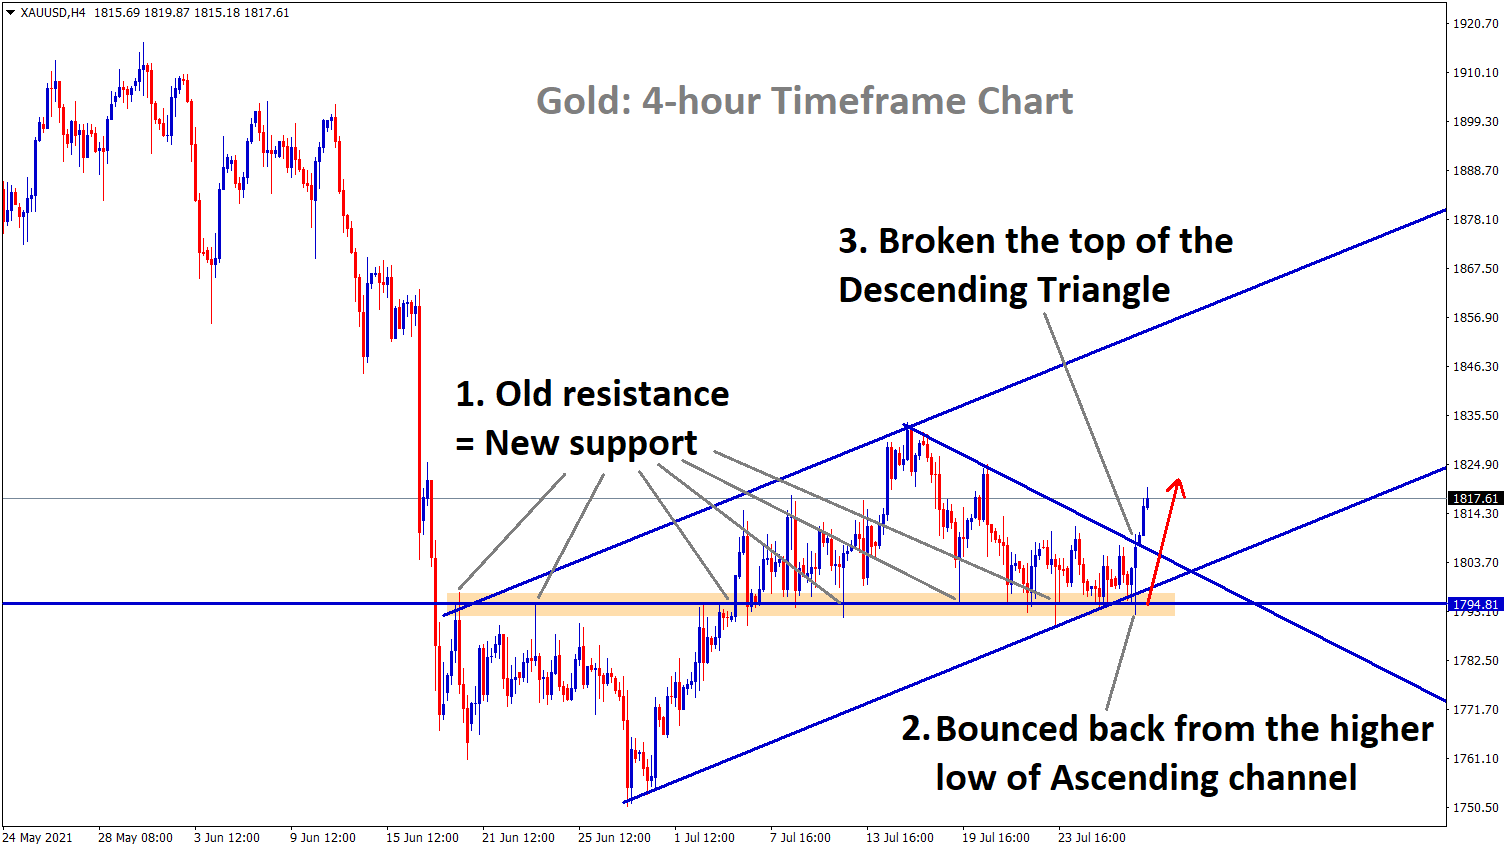 Gold has broken the top of the Descending triangle and bounced back from the higher low Copy